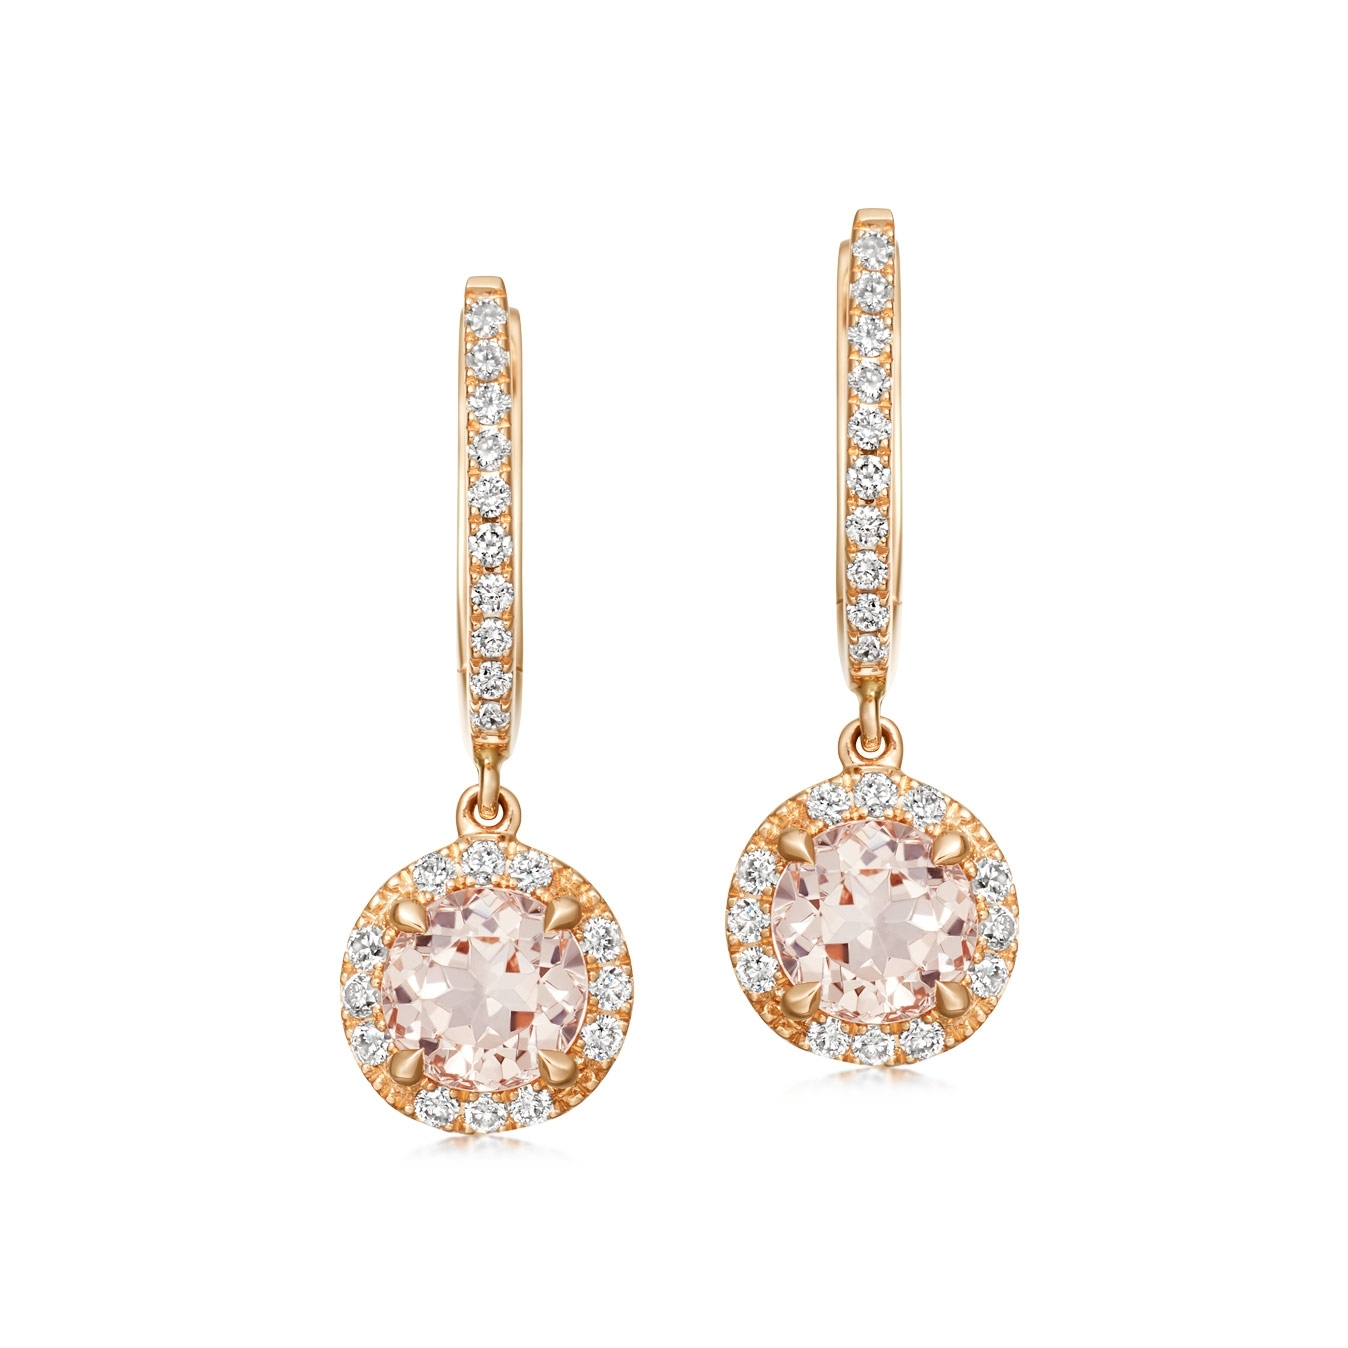 Morganite and Diamond Drop Earrings